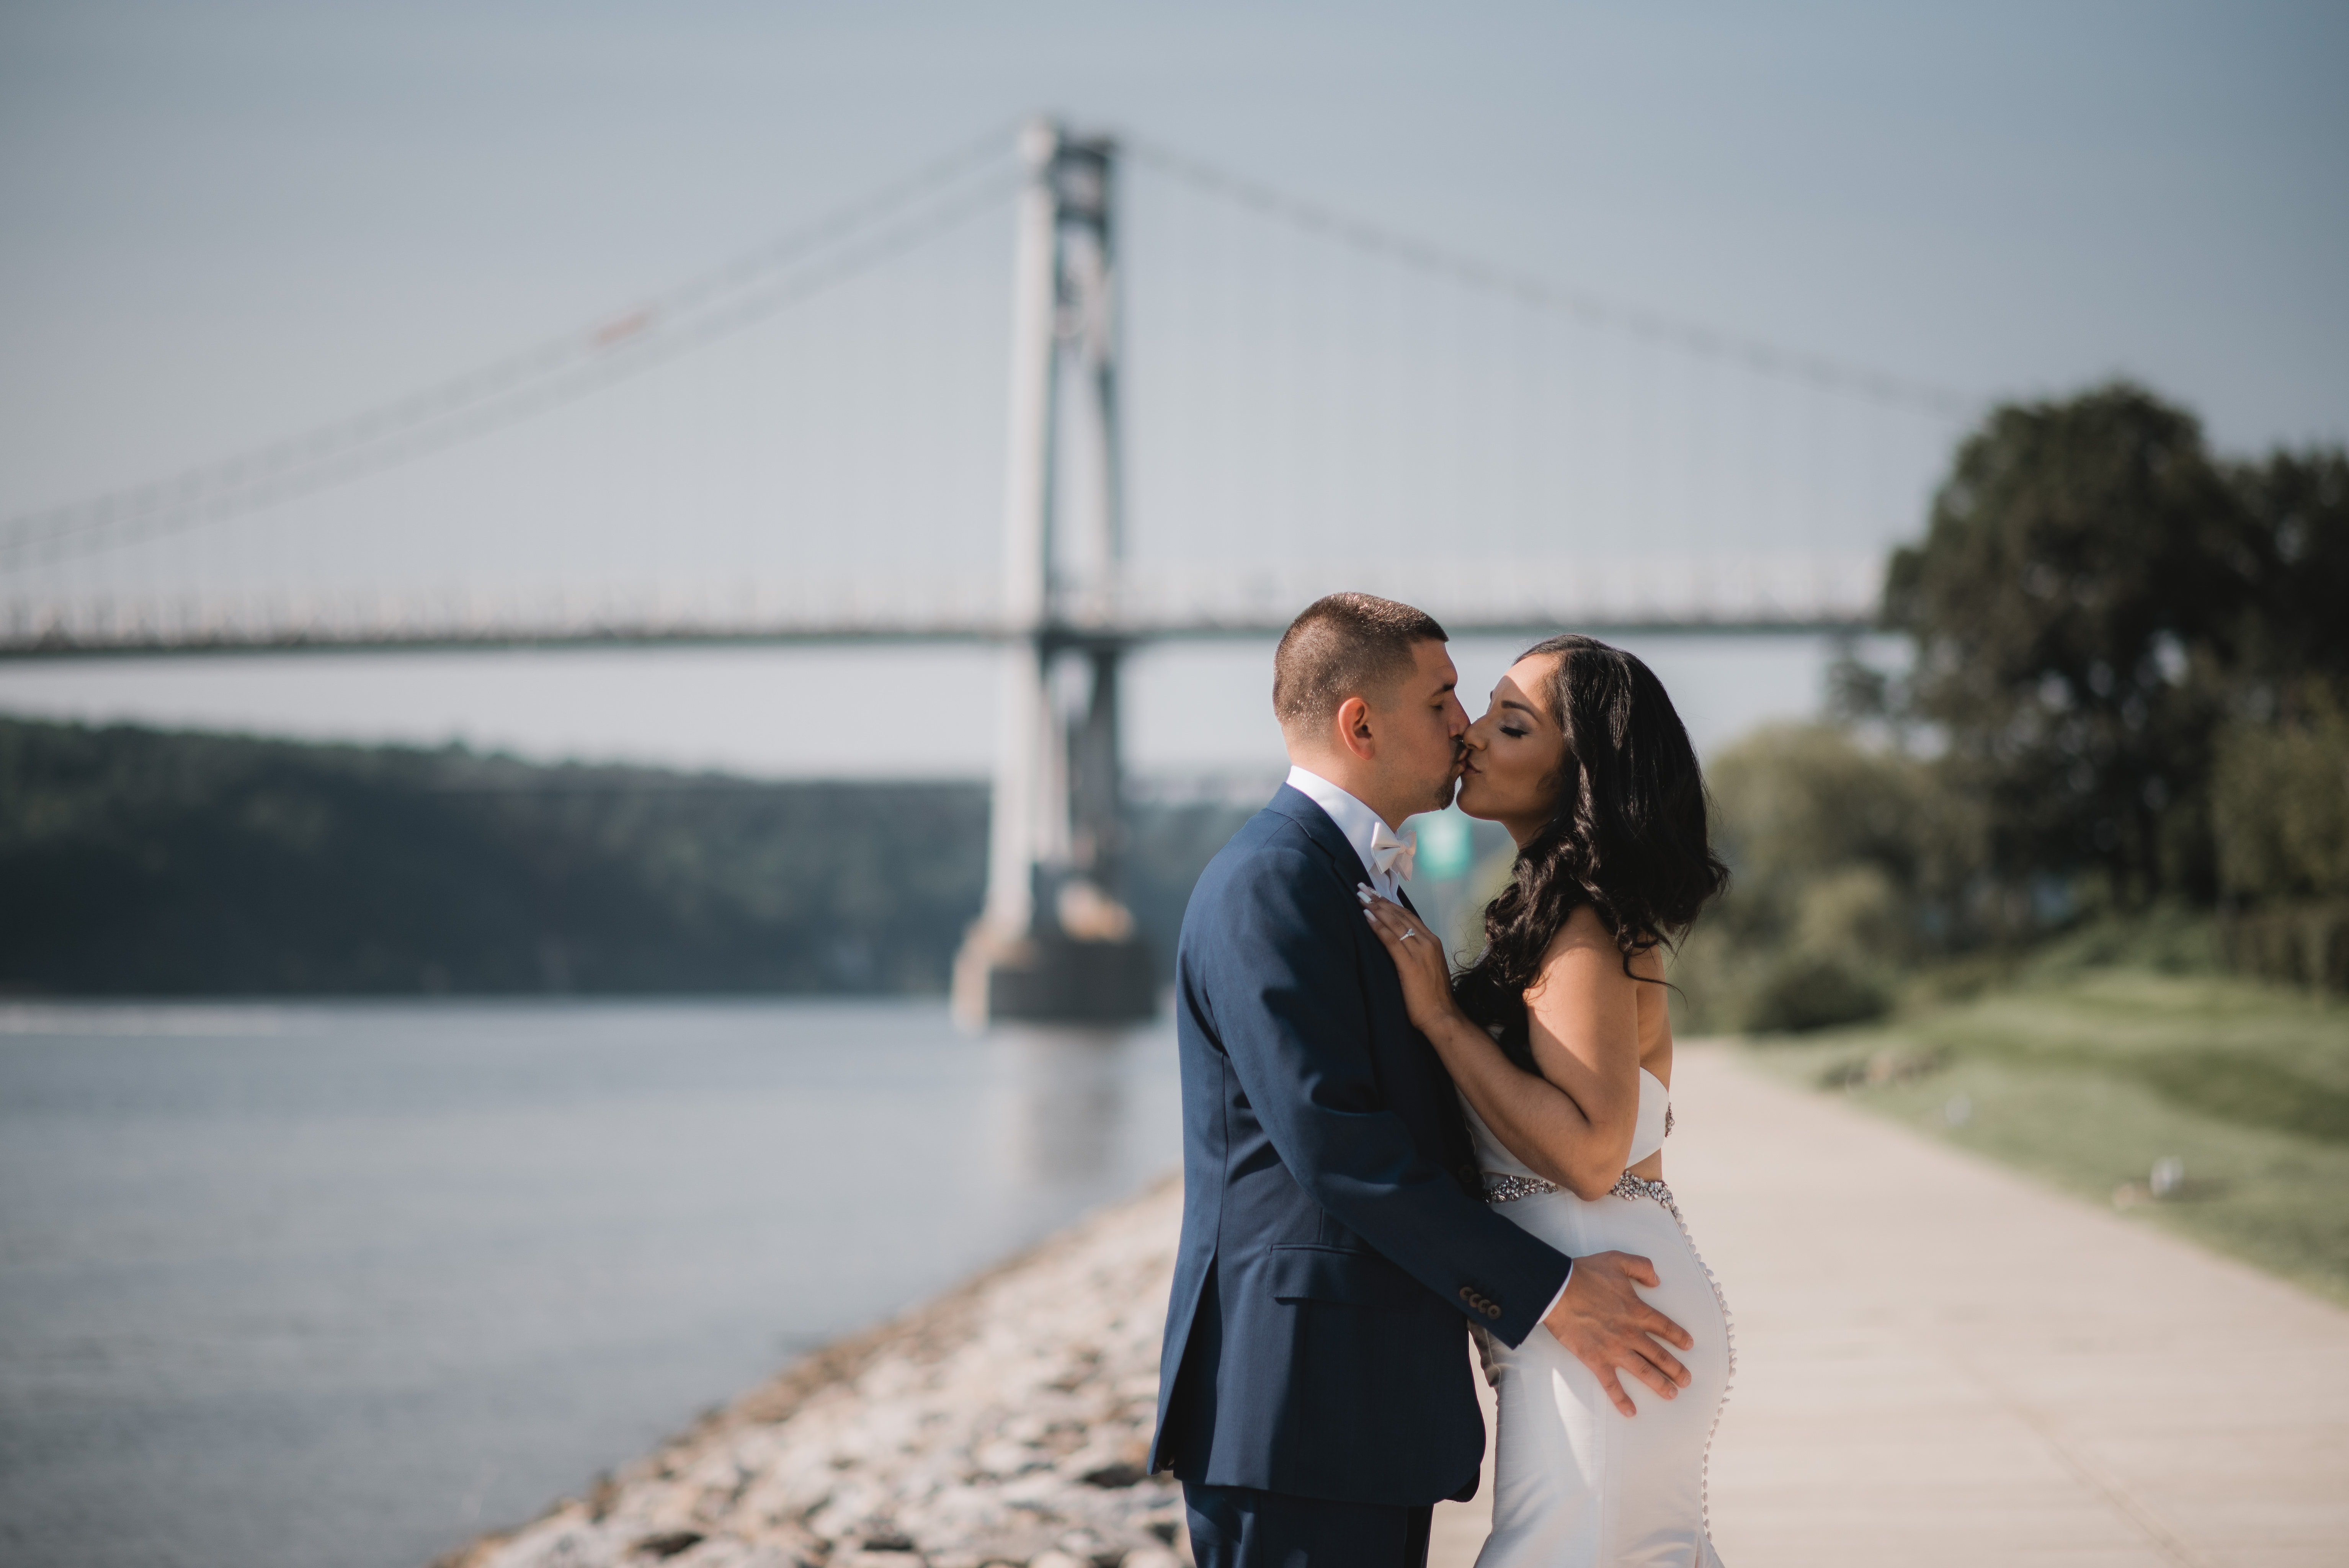 Bride poses by bridge on hudson river at a Hudson Valley Wedding at The Grandview in Poughkeepsie